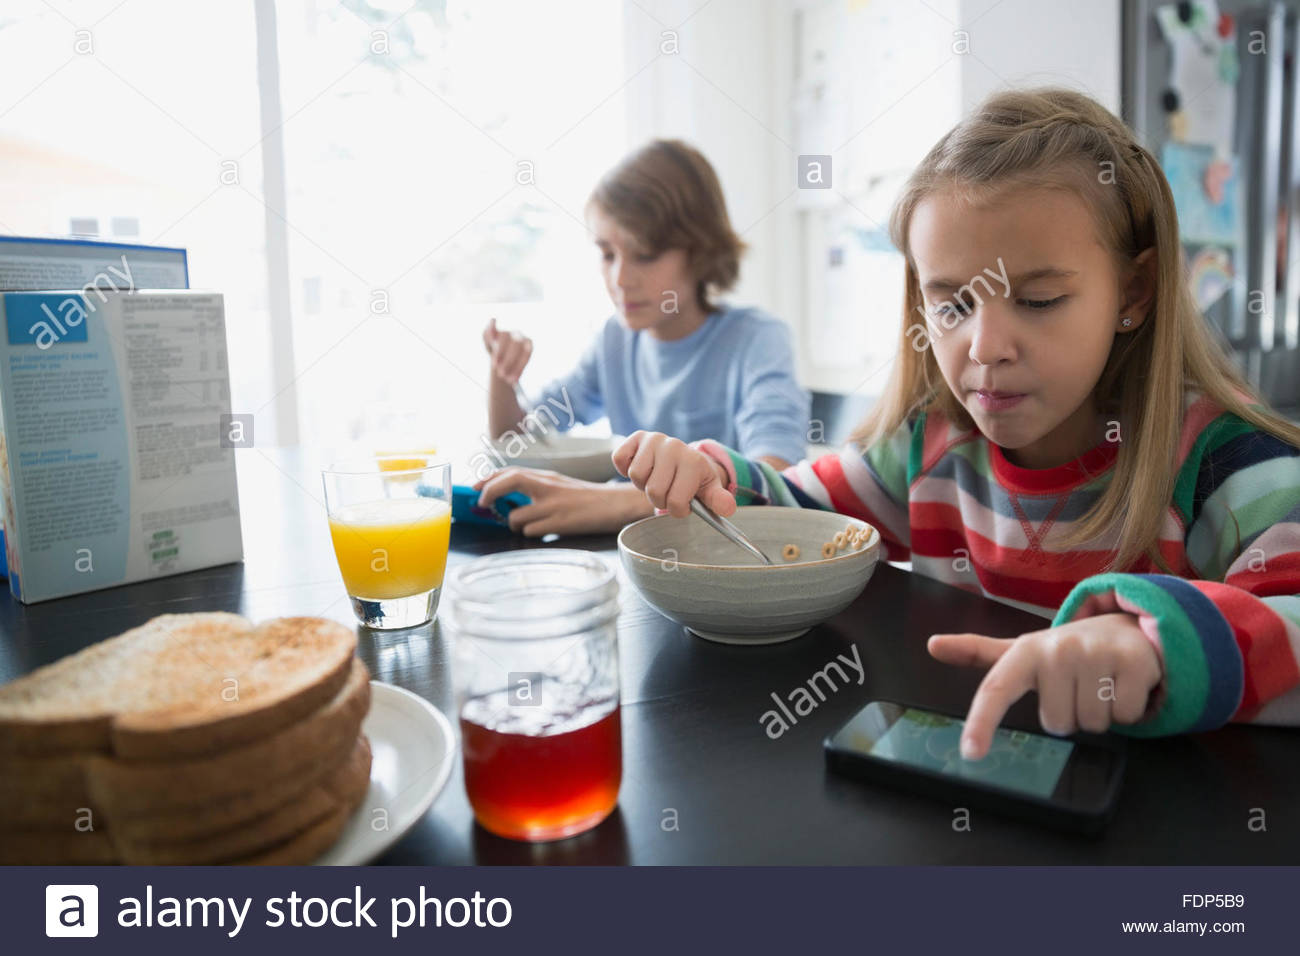 Brother and sister eating breakfast texting - Stock Image